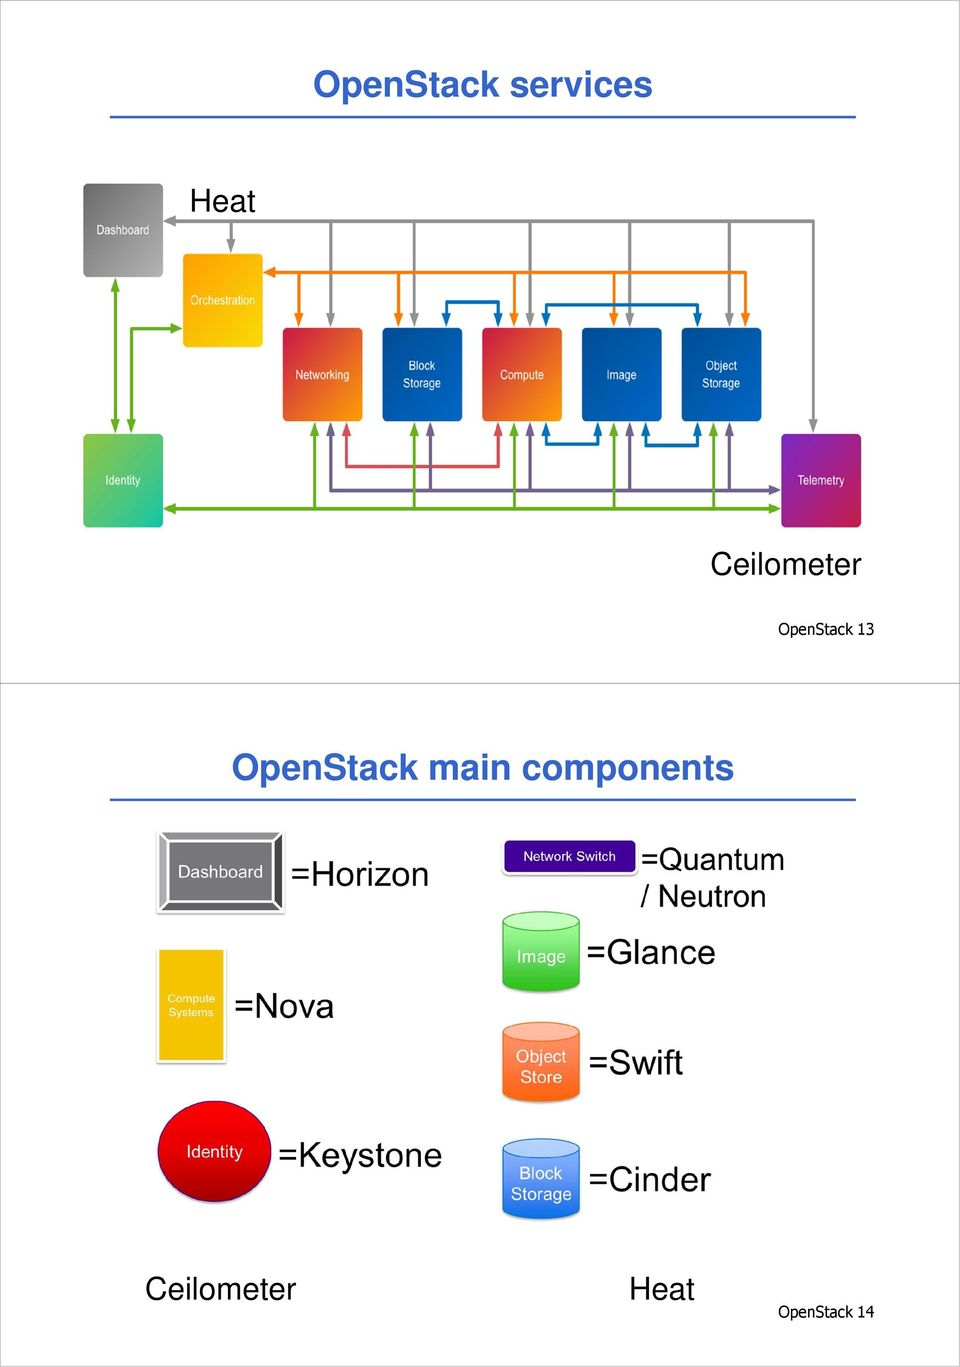 OpenStack main components